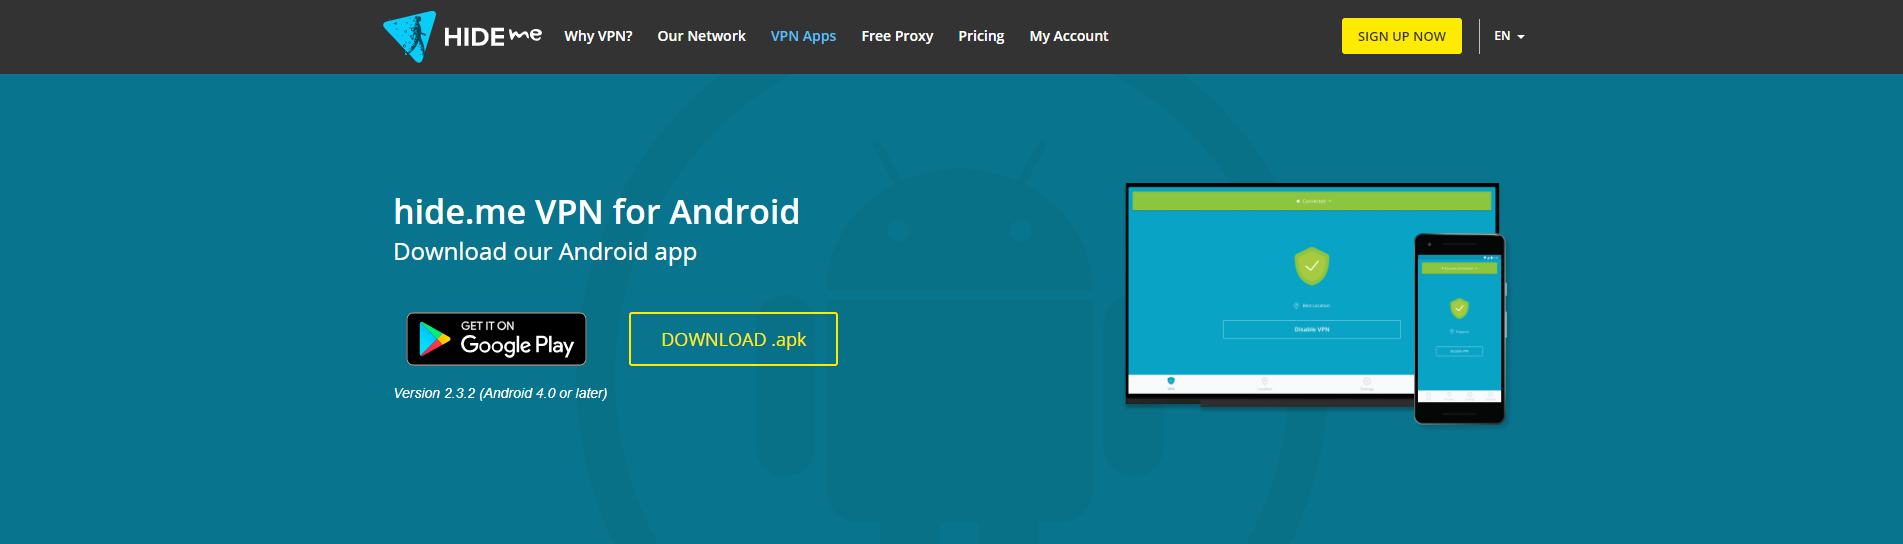 Android VPN client download page for .apk